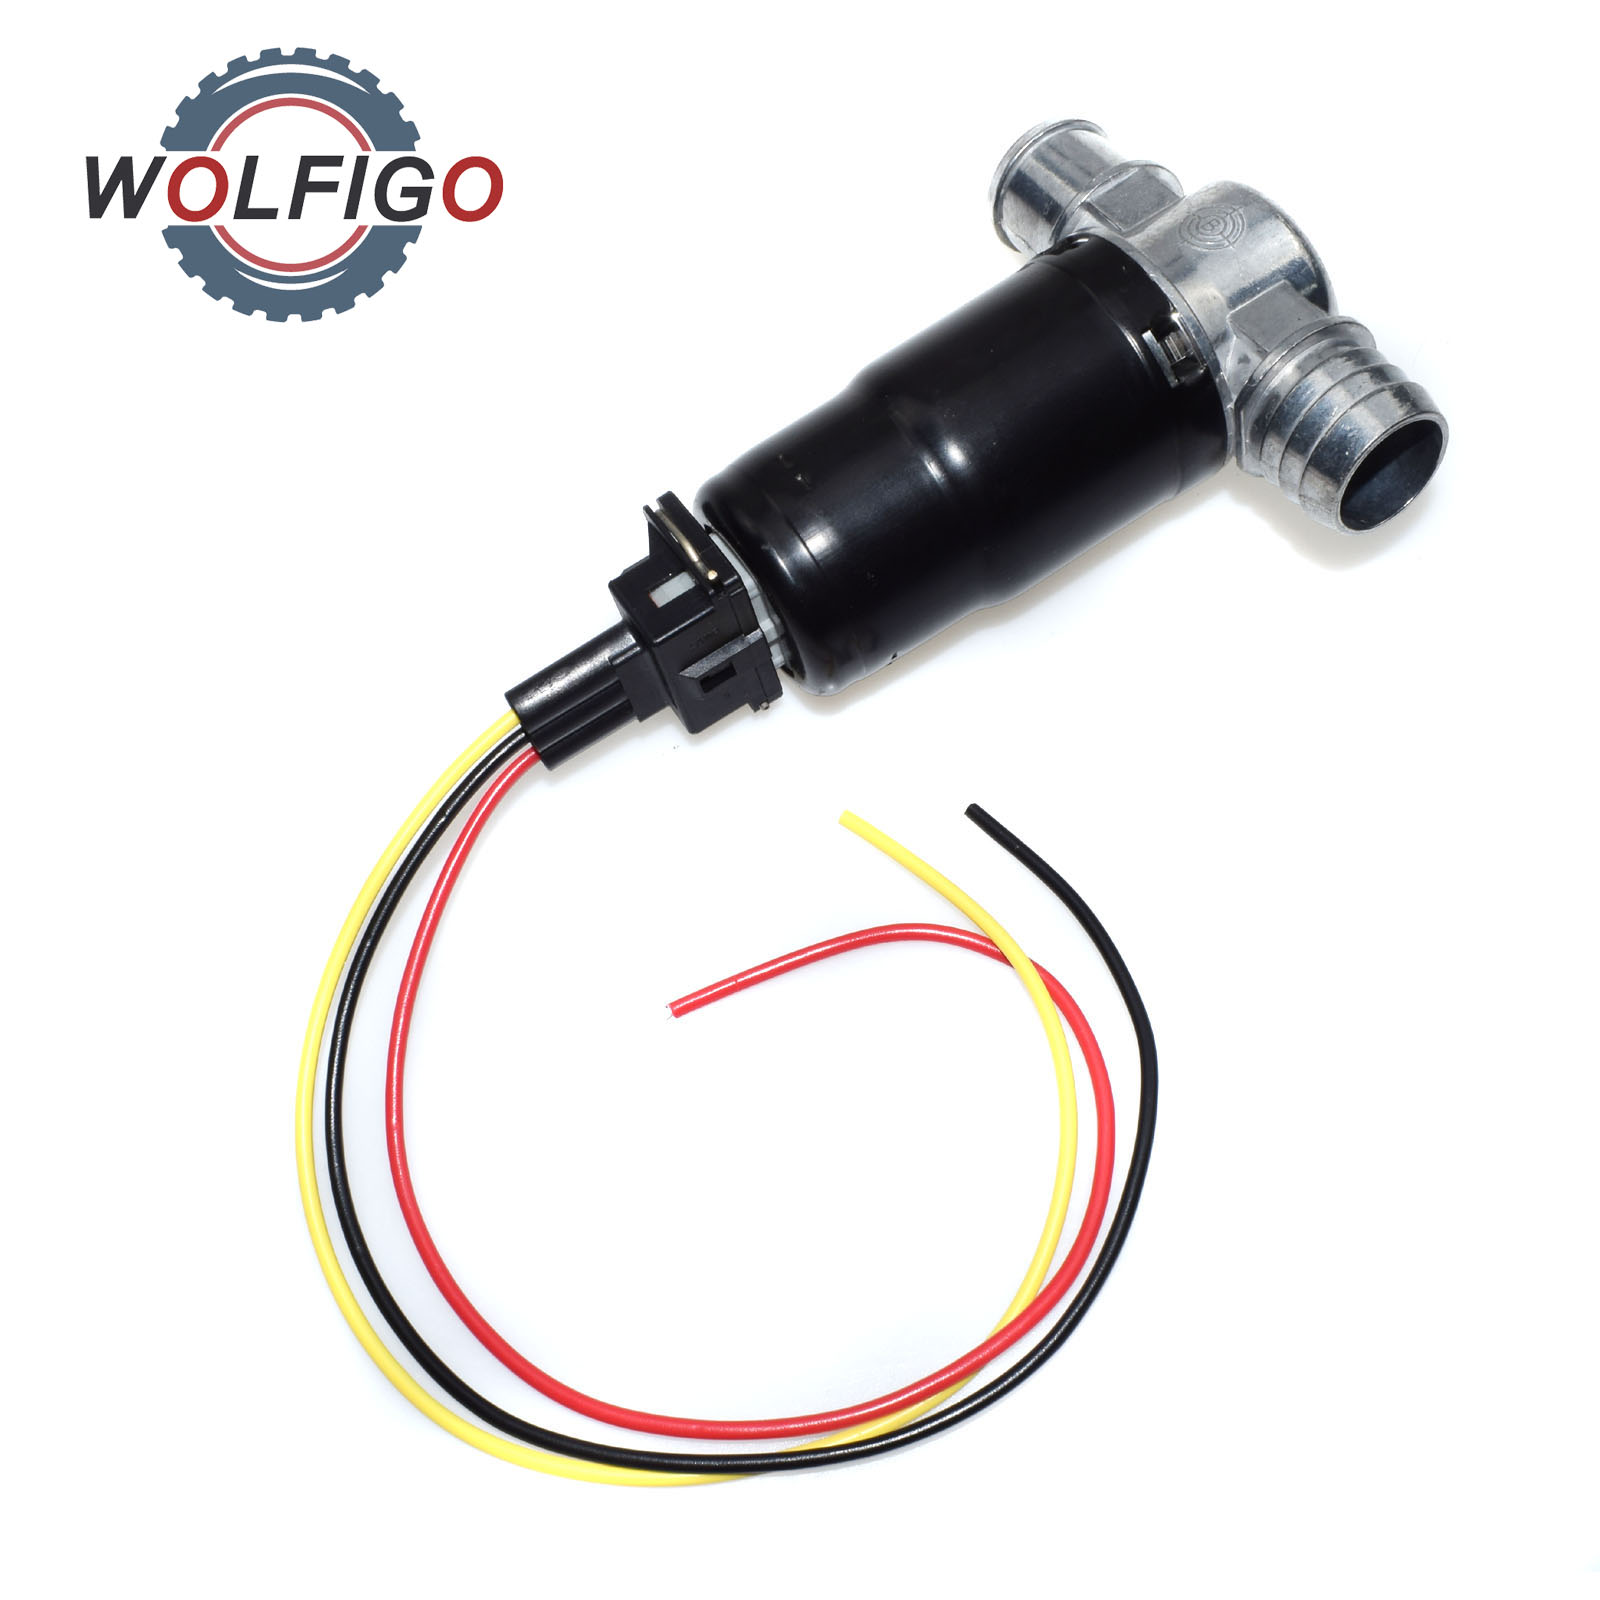 Wolfigo Idle Air Control Valve Iac With Connector Plug Wire For Bmw E30 Wiring Harness Connectors E34 M20 M50 320i 325ix 520i Z1 13411433626 0280140524 In From